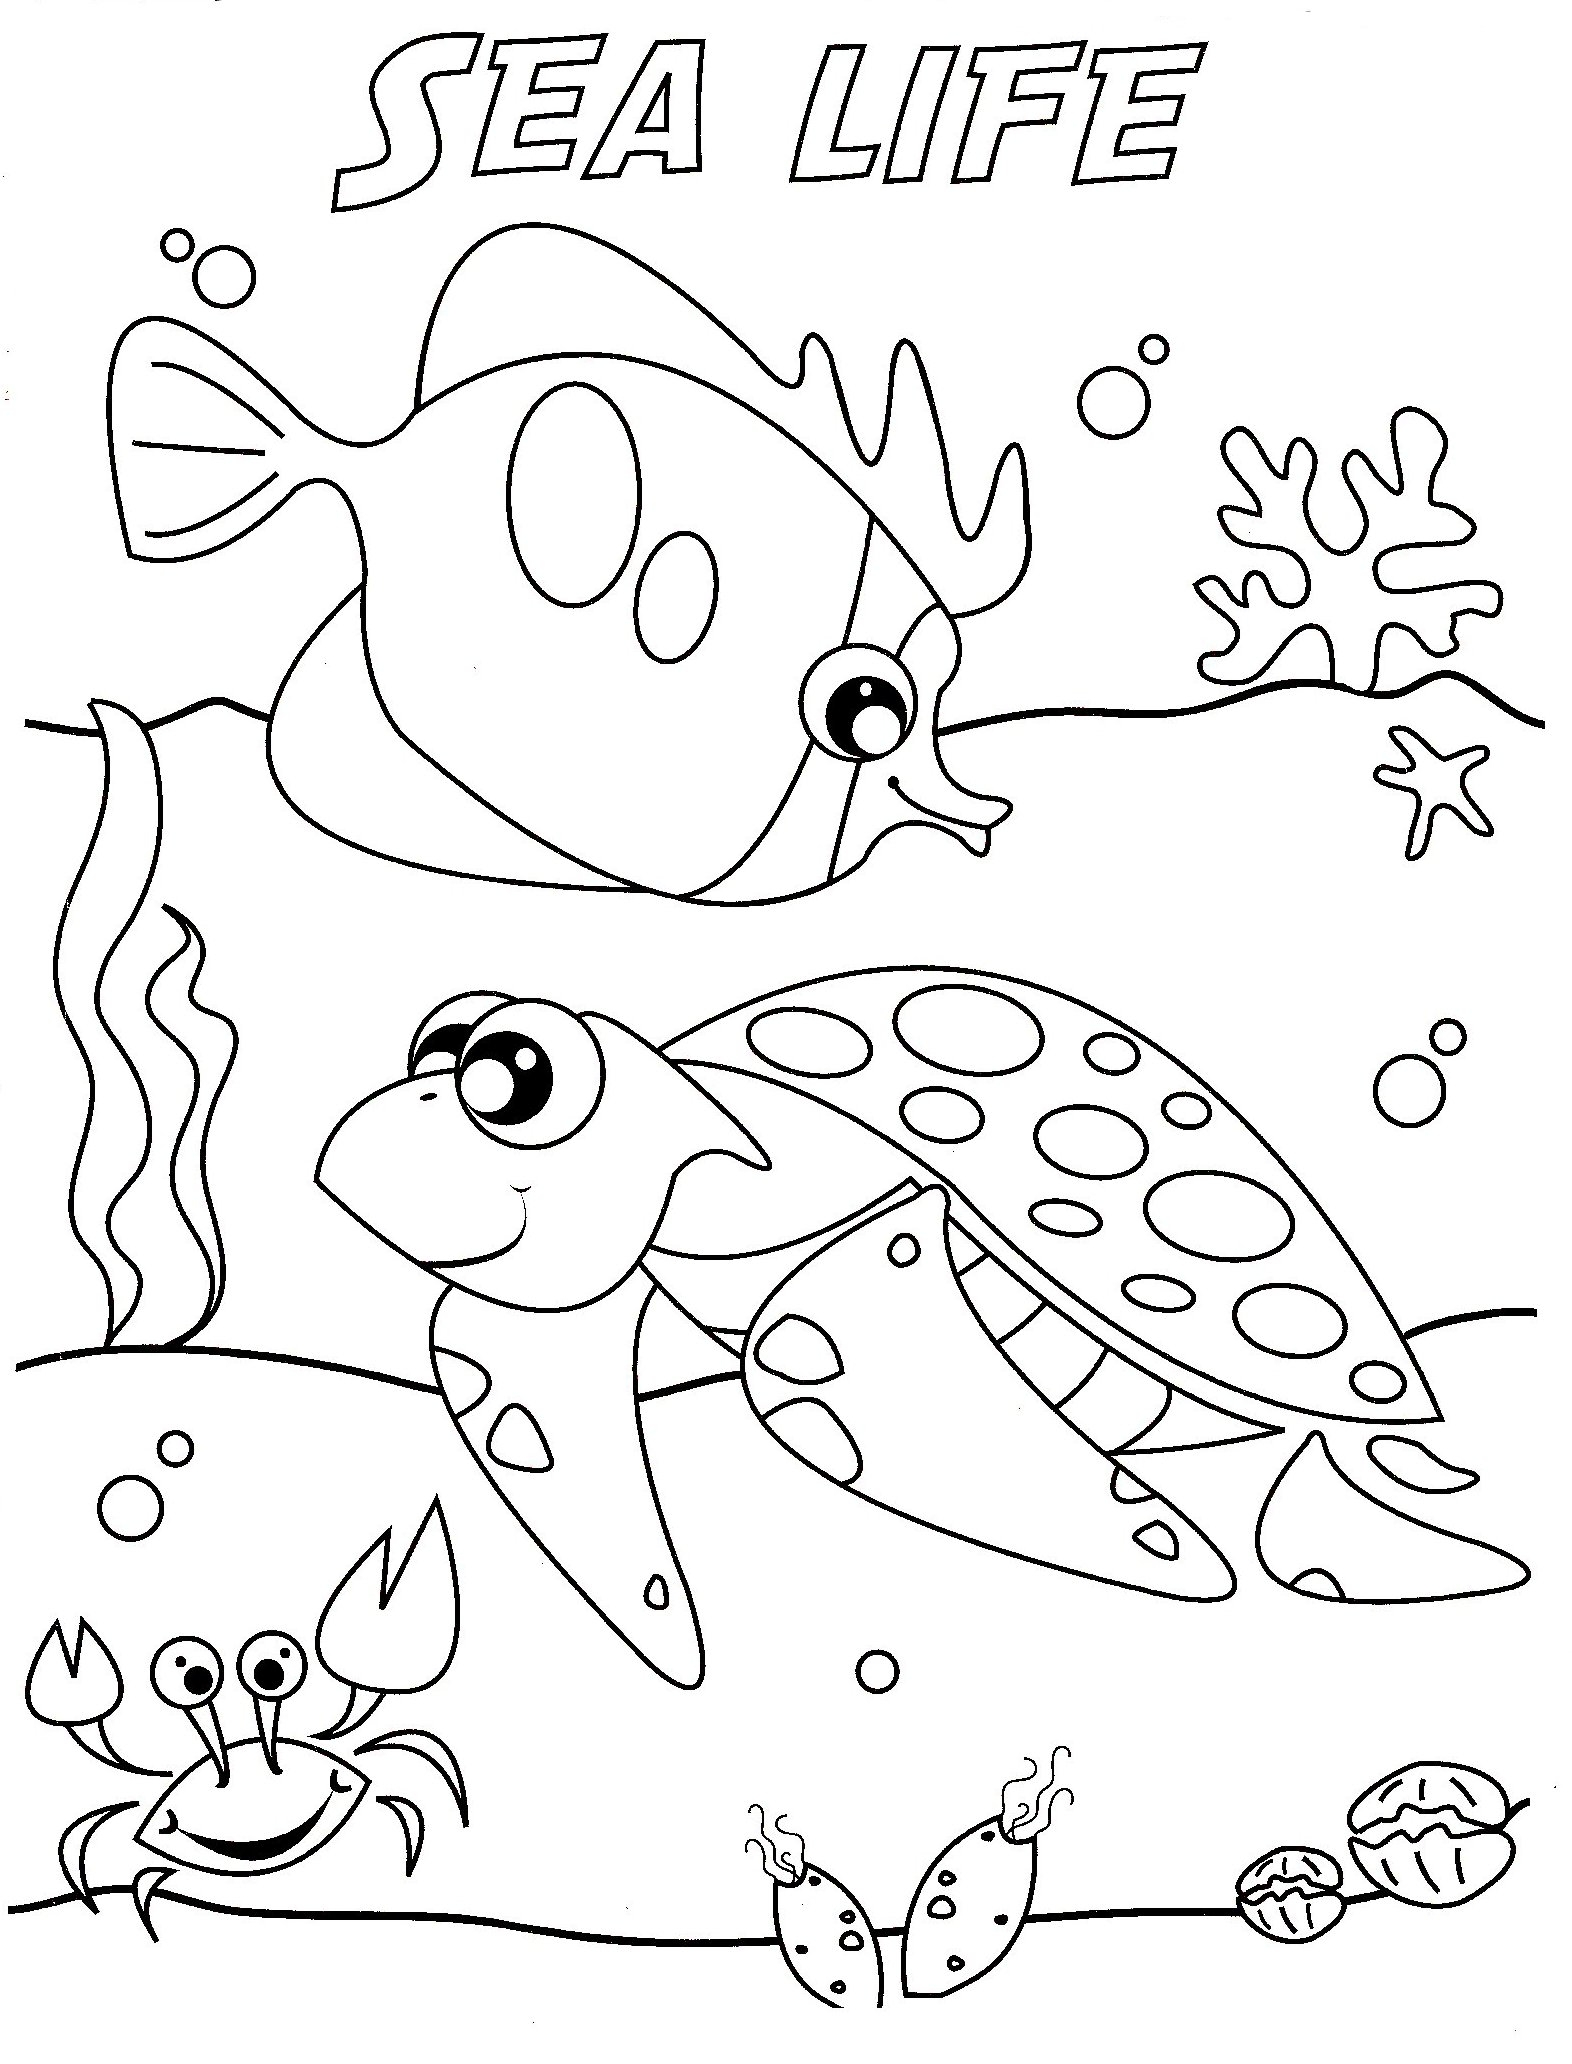 fish coloring pages - sea creature coloring